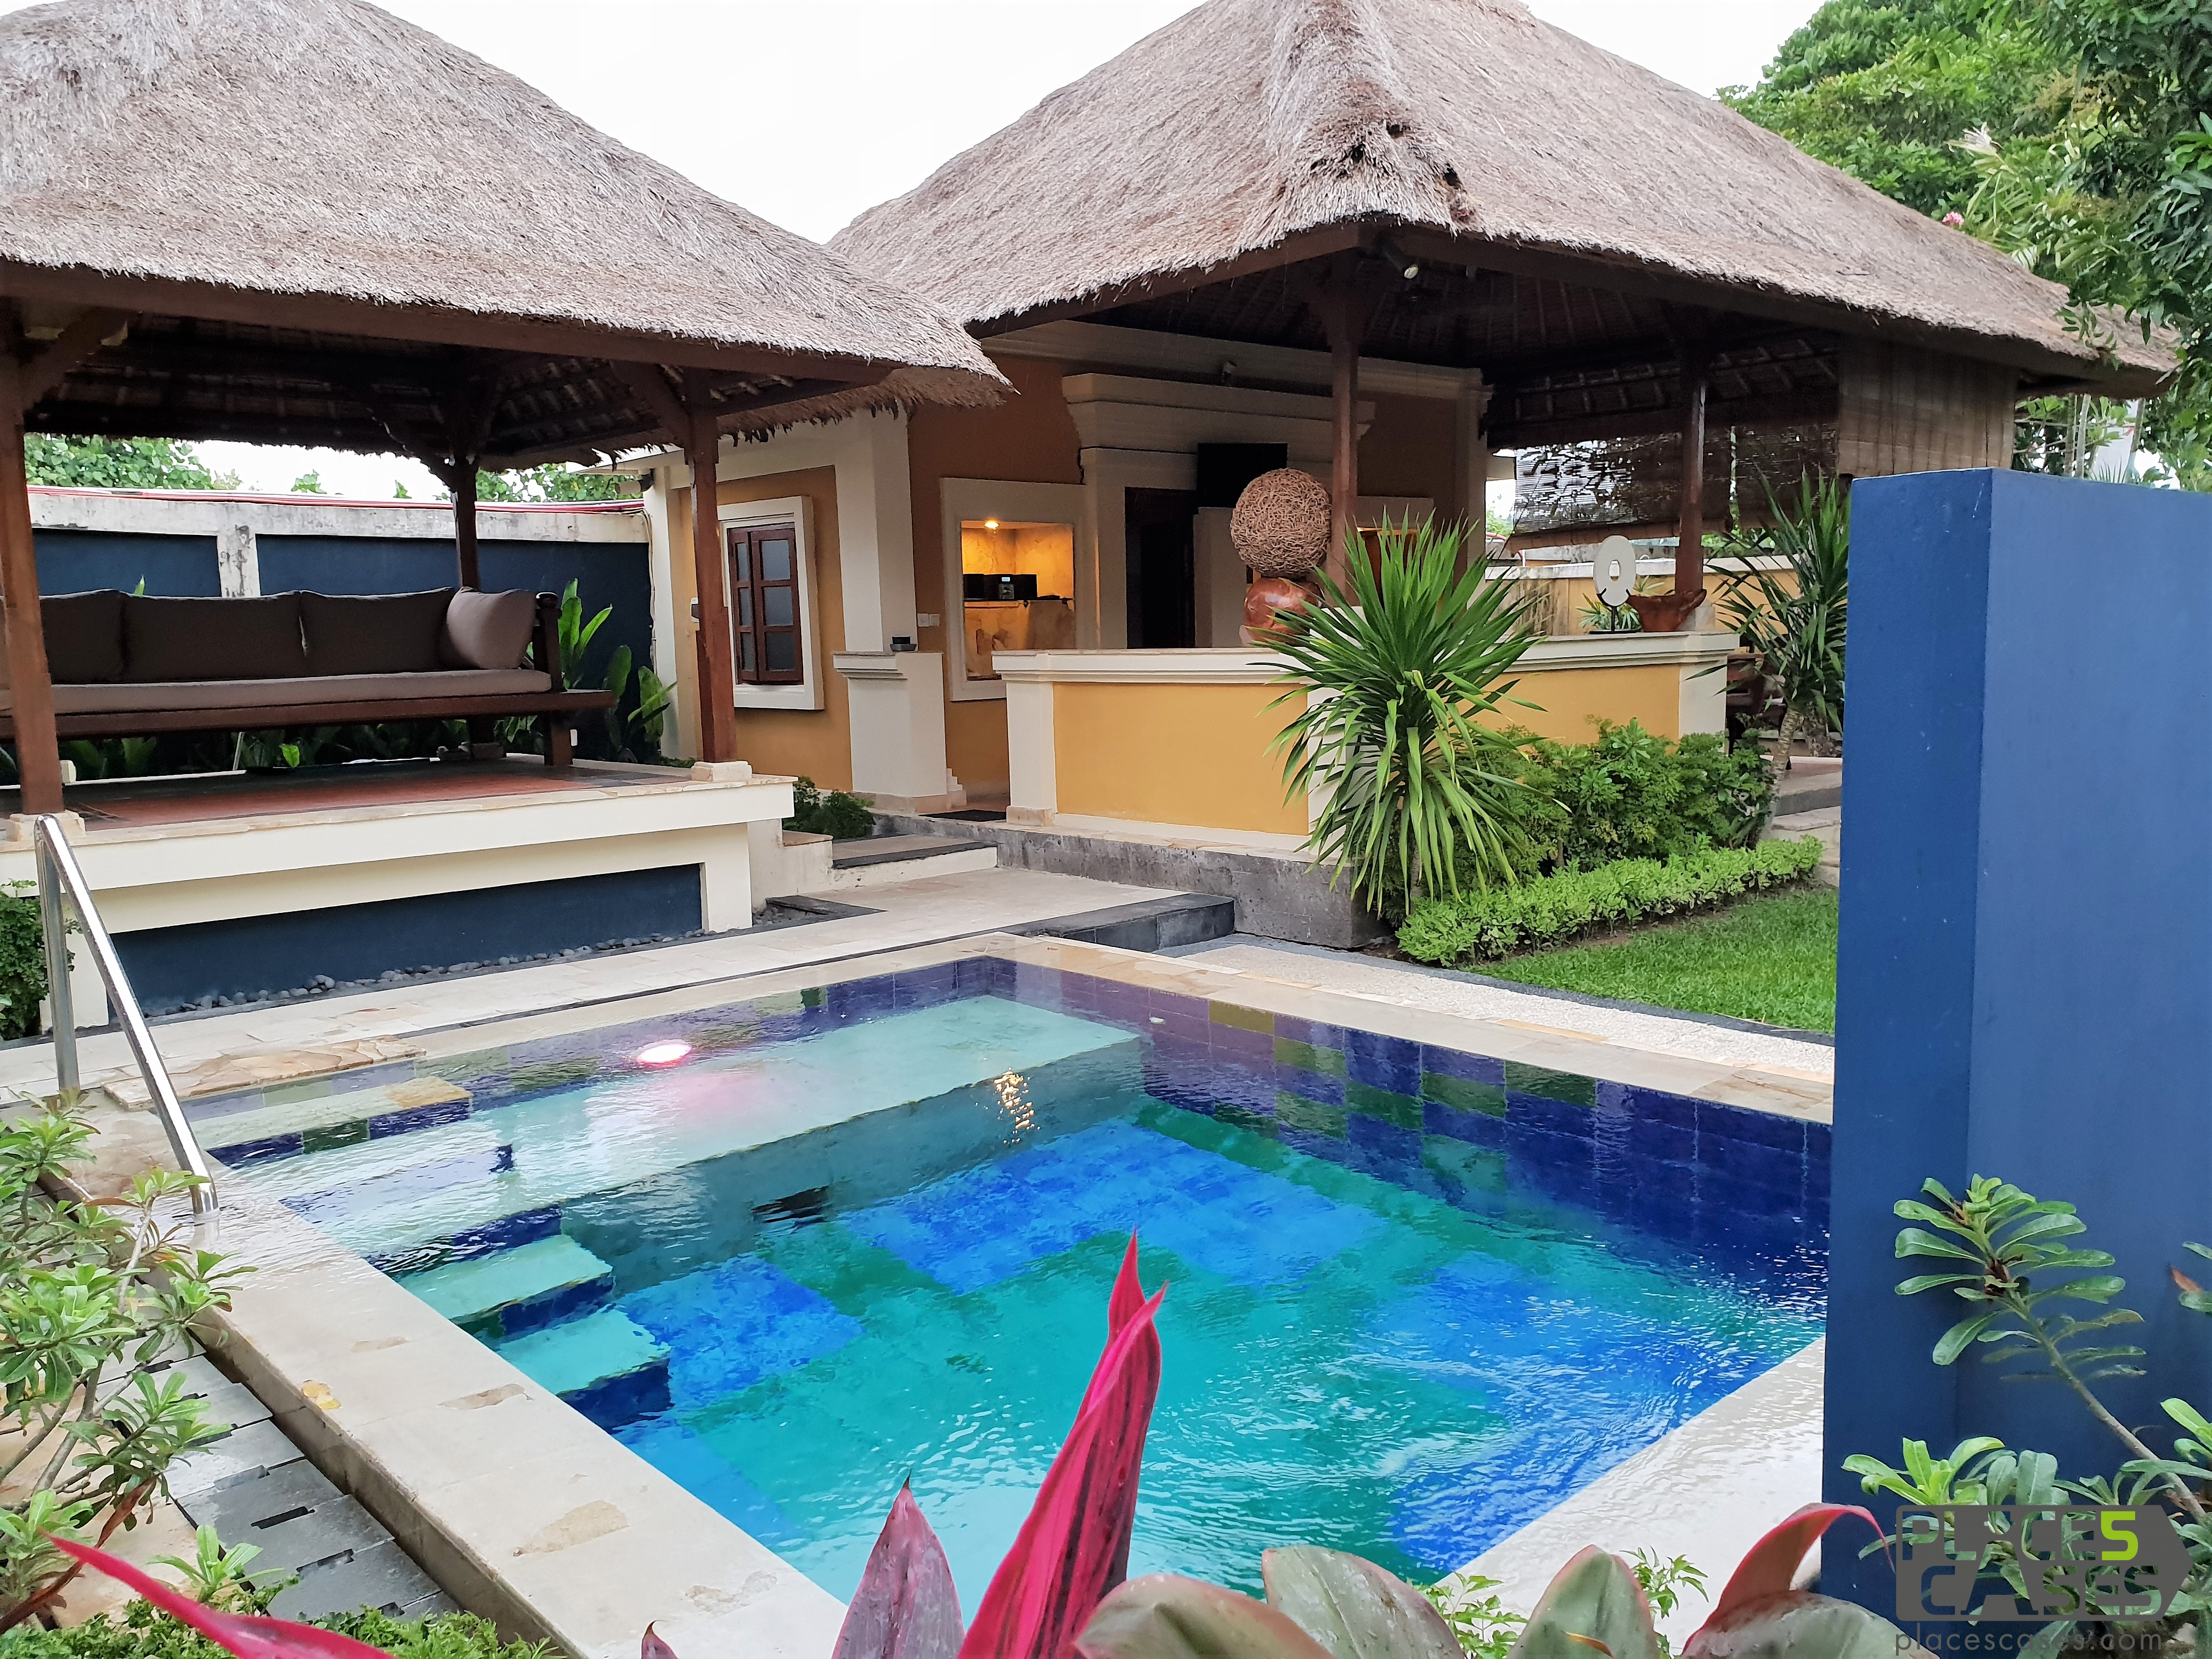 Do you want to go to Bali Island with the whole family in comfortable villas with private pool? I know a place like this!